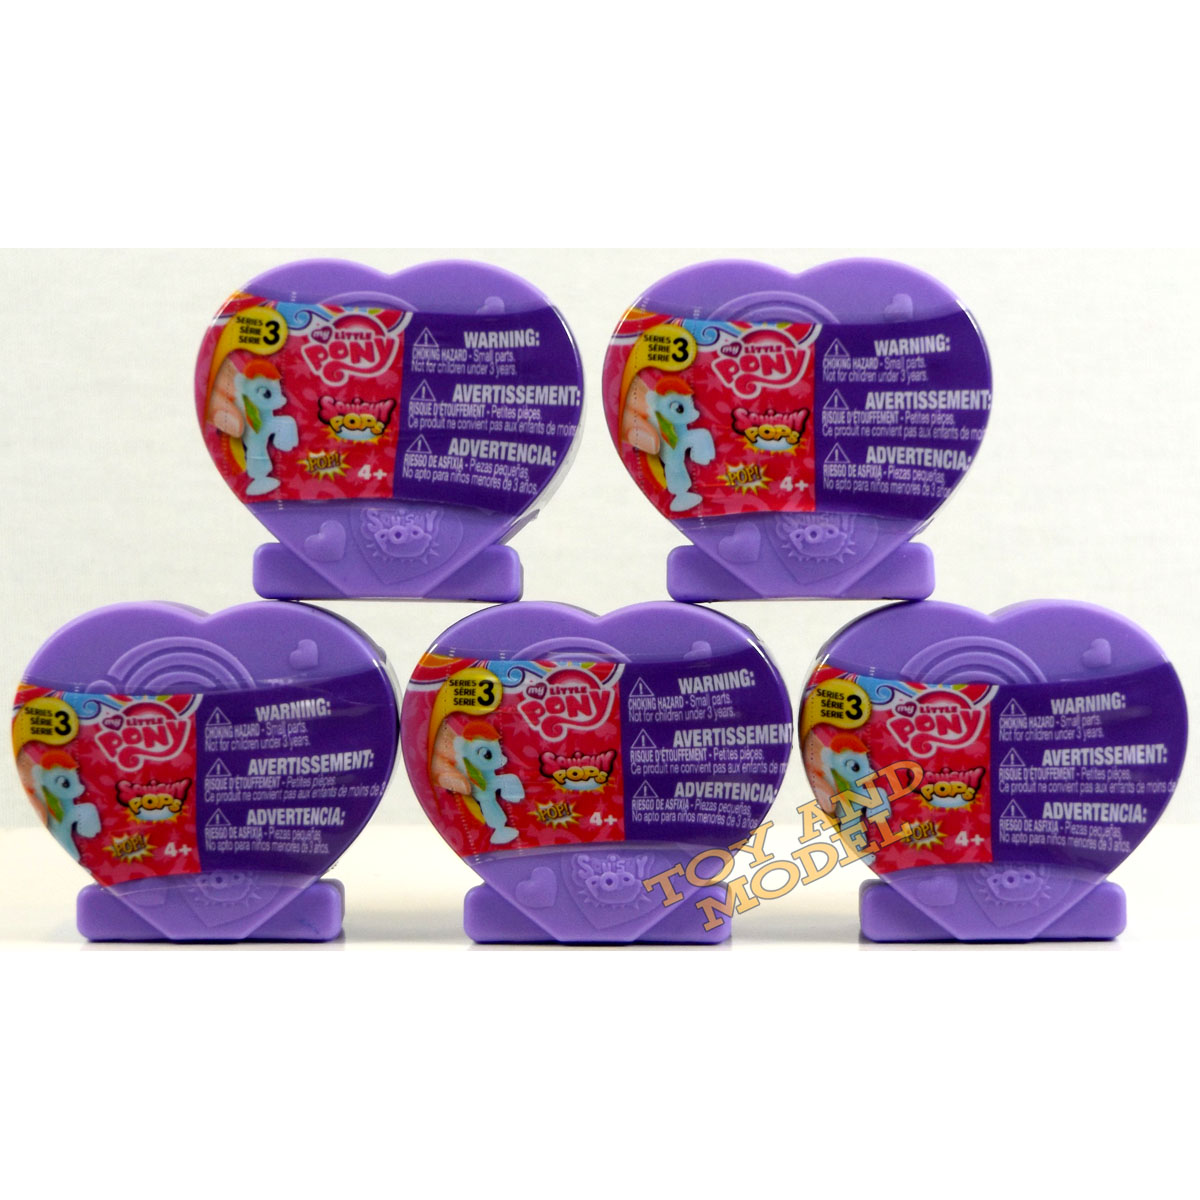 Case Of Squishy Pops : 5 Pack of My Little Pony Squishy Pops Heart Case Series 3 - Fast Dispatch 4Yrs+ eBay